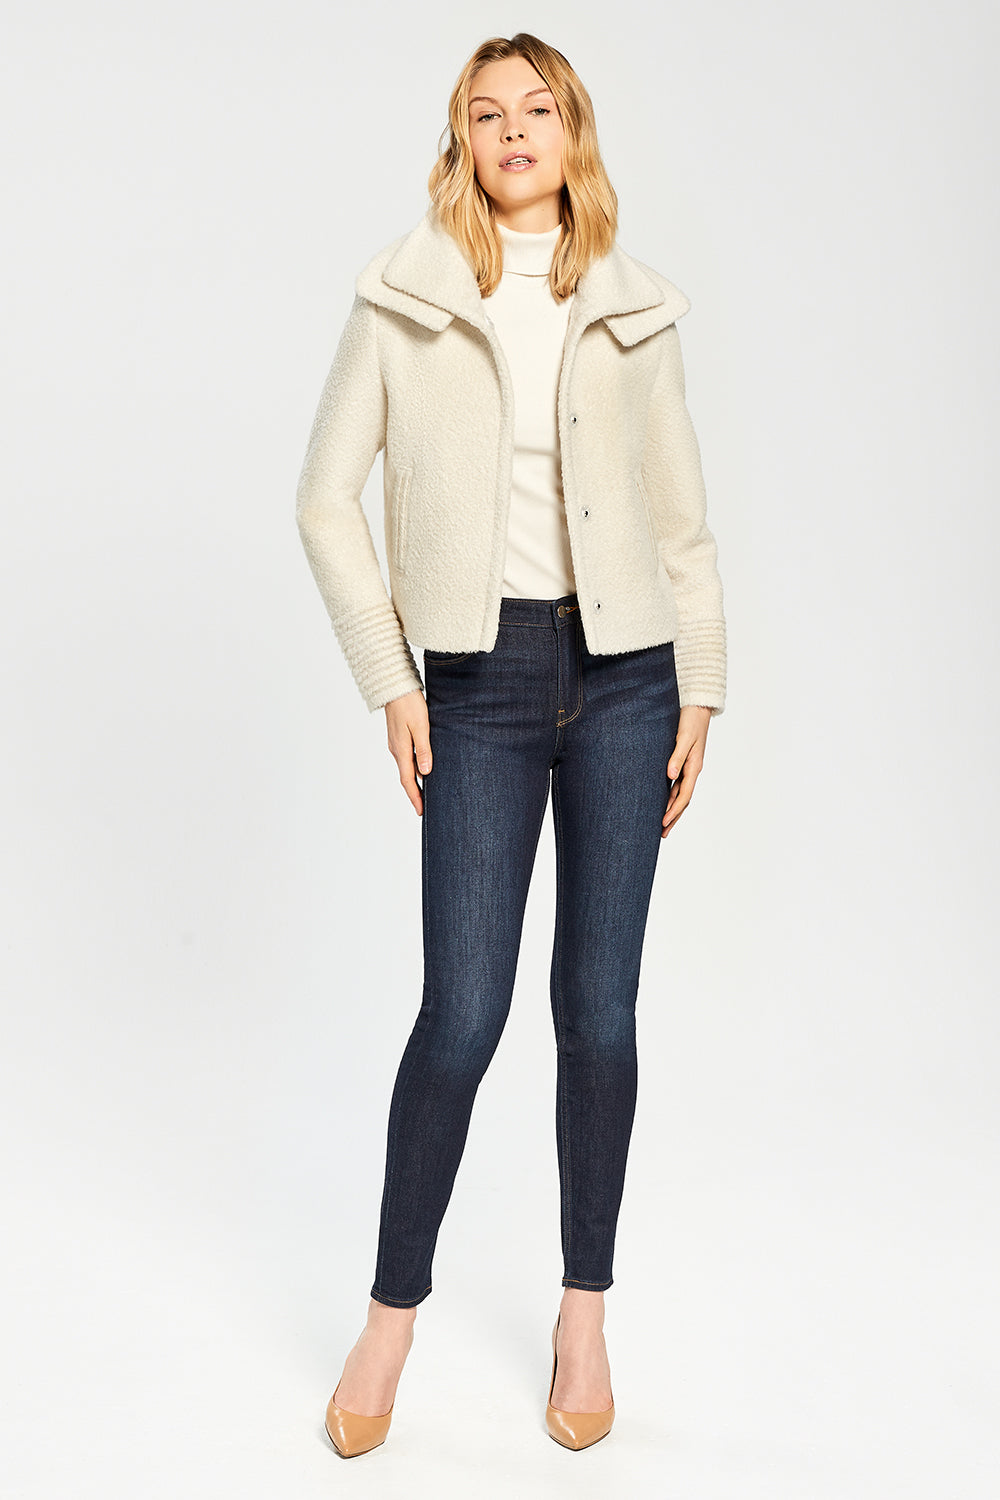 Sentaler Bouclé Alpaca Moto Jacket with Signature Double Collar featured in Bouclé Alpaca and available in Ivory. Seen open.